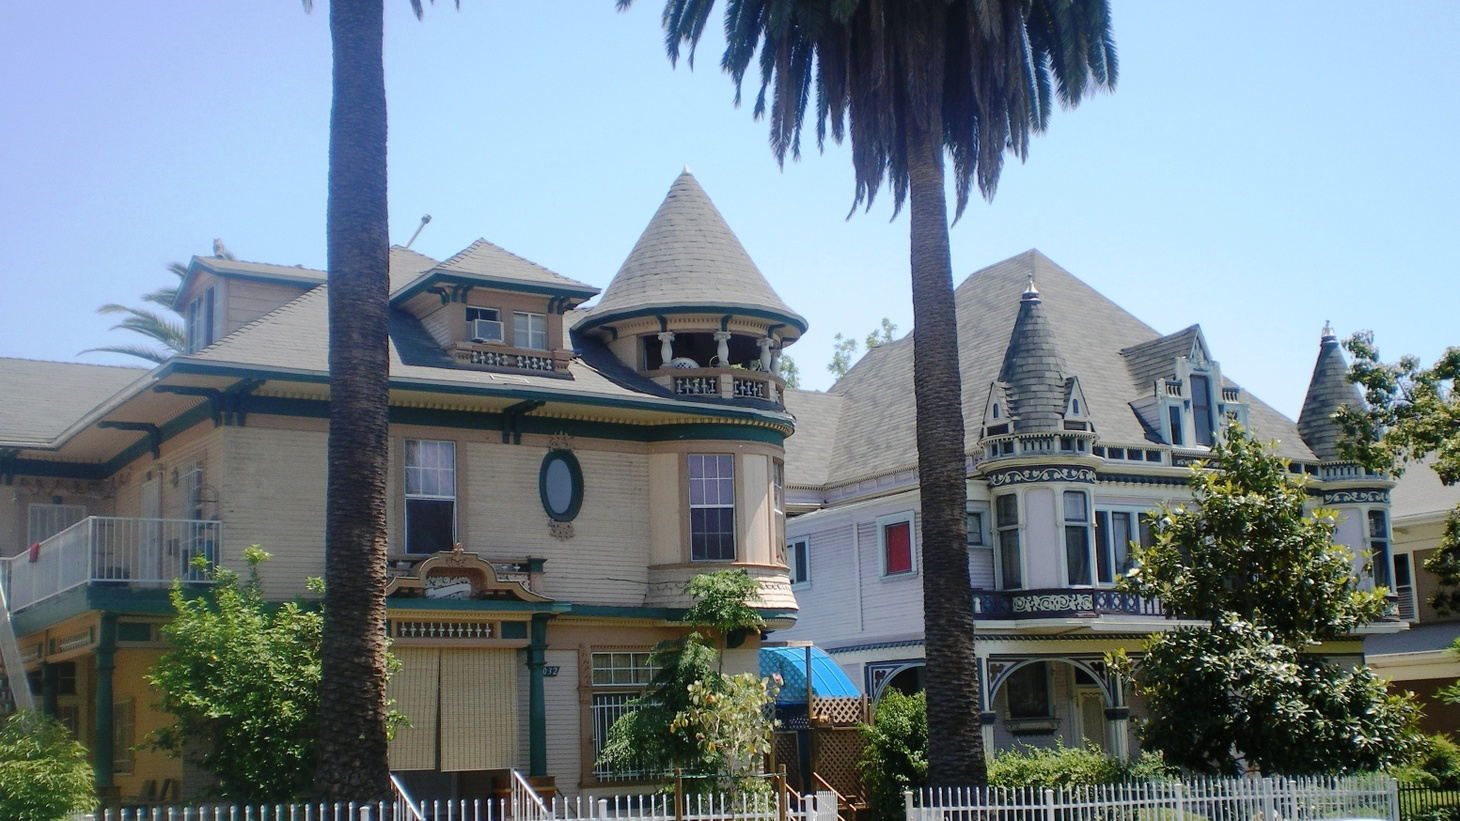 South Bonnie Brae Tract Historical District, Pico-Union district, Los Angeles, California. The 1890's Victorian Queen Anne Style houses are Los Angeles Historic-Cultural Monuments.